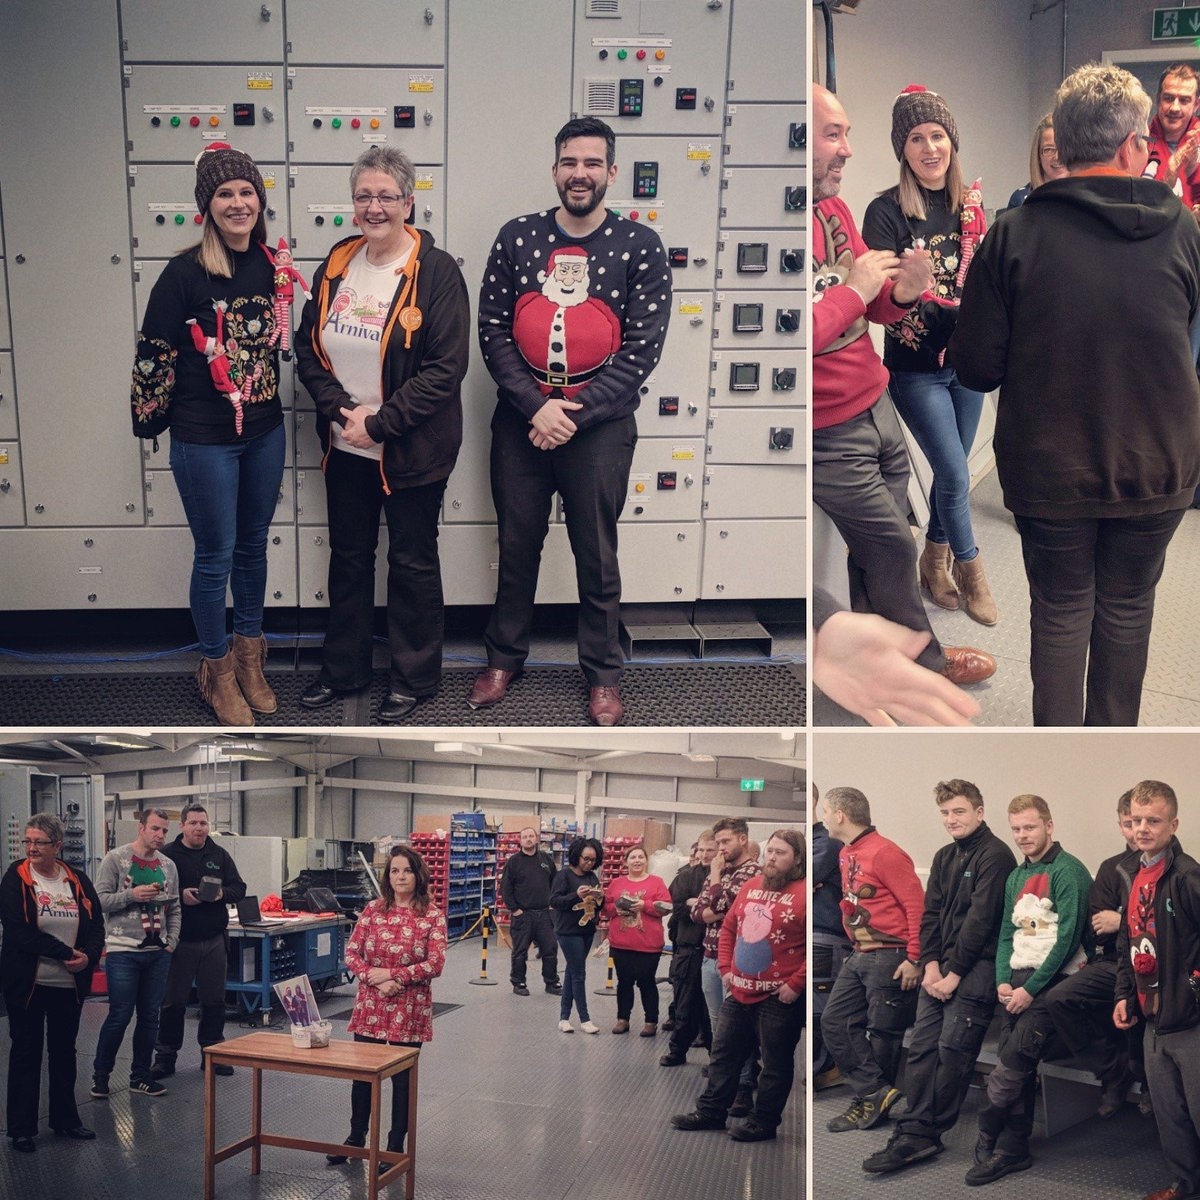 test Twitter Media - Christmas Jumper Day today at TES HQ. Well done to the winners Irene & Calum and thanks to Carol Doey from HubBT80 for judging 🎅🎄#ChristmasJumperDay https://t.co/dF6z12NGTB